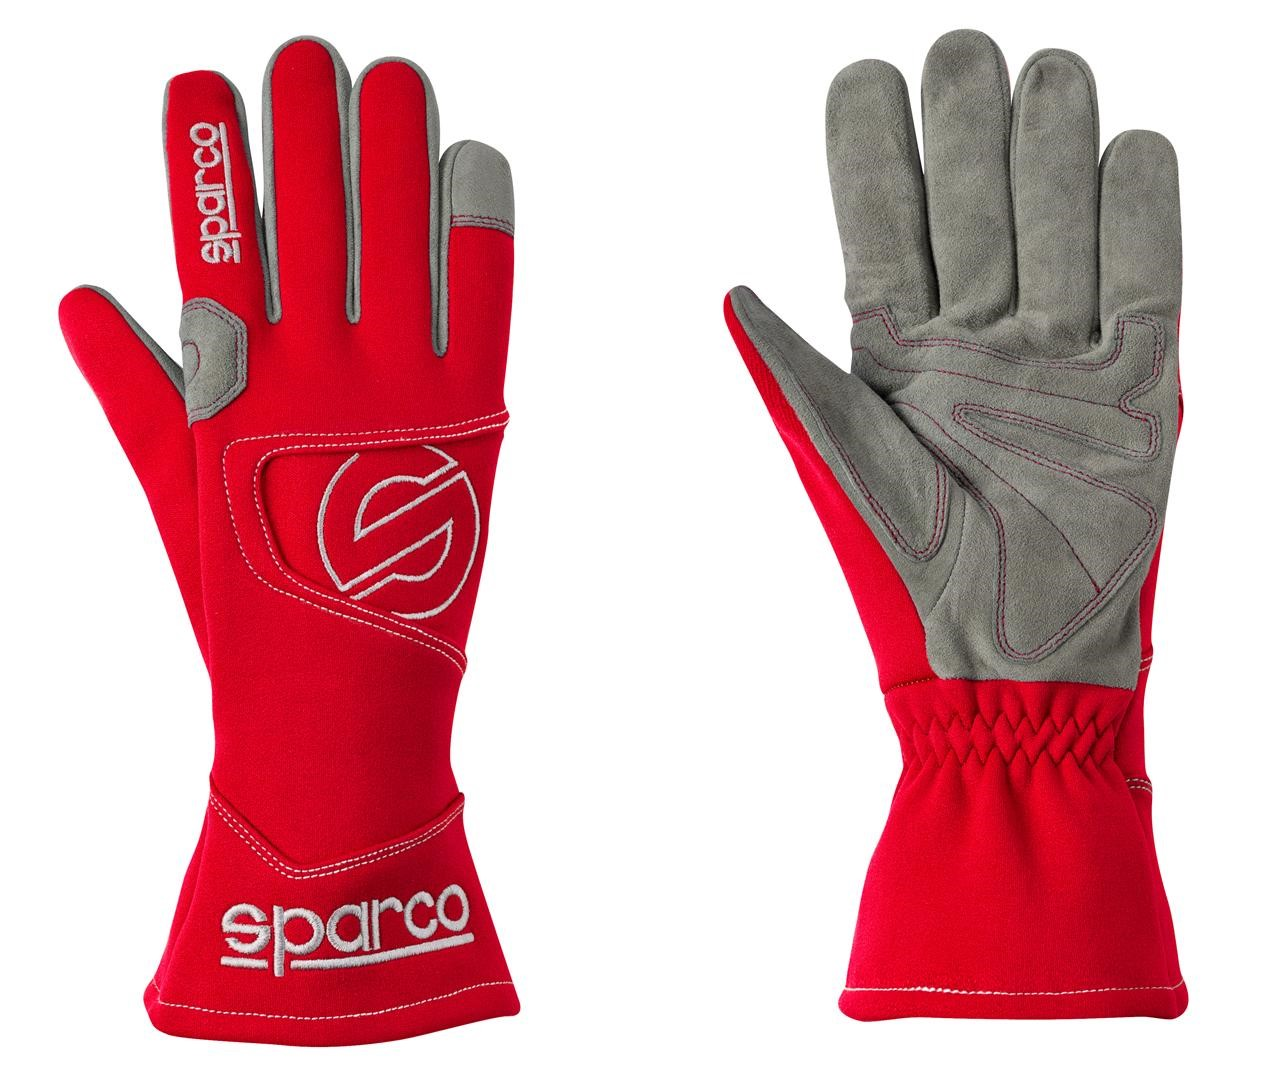 Kart Gloves Sparco Hurricane K-3 - Red - Size 9